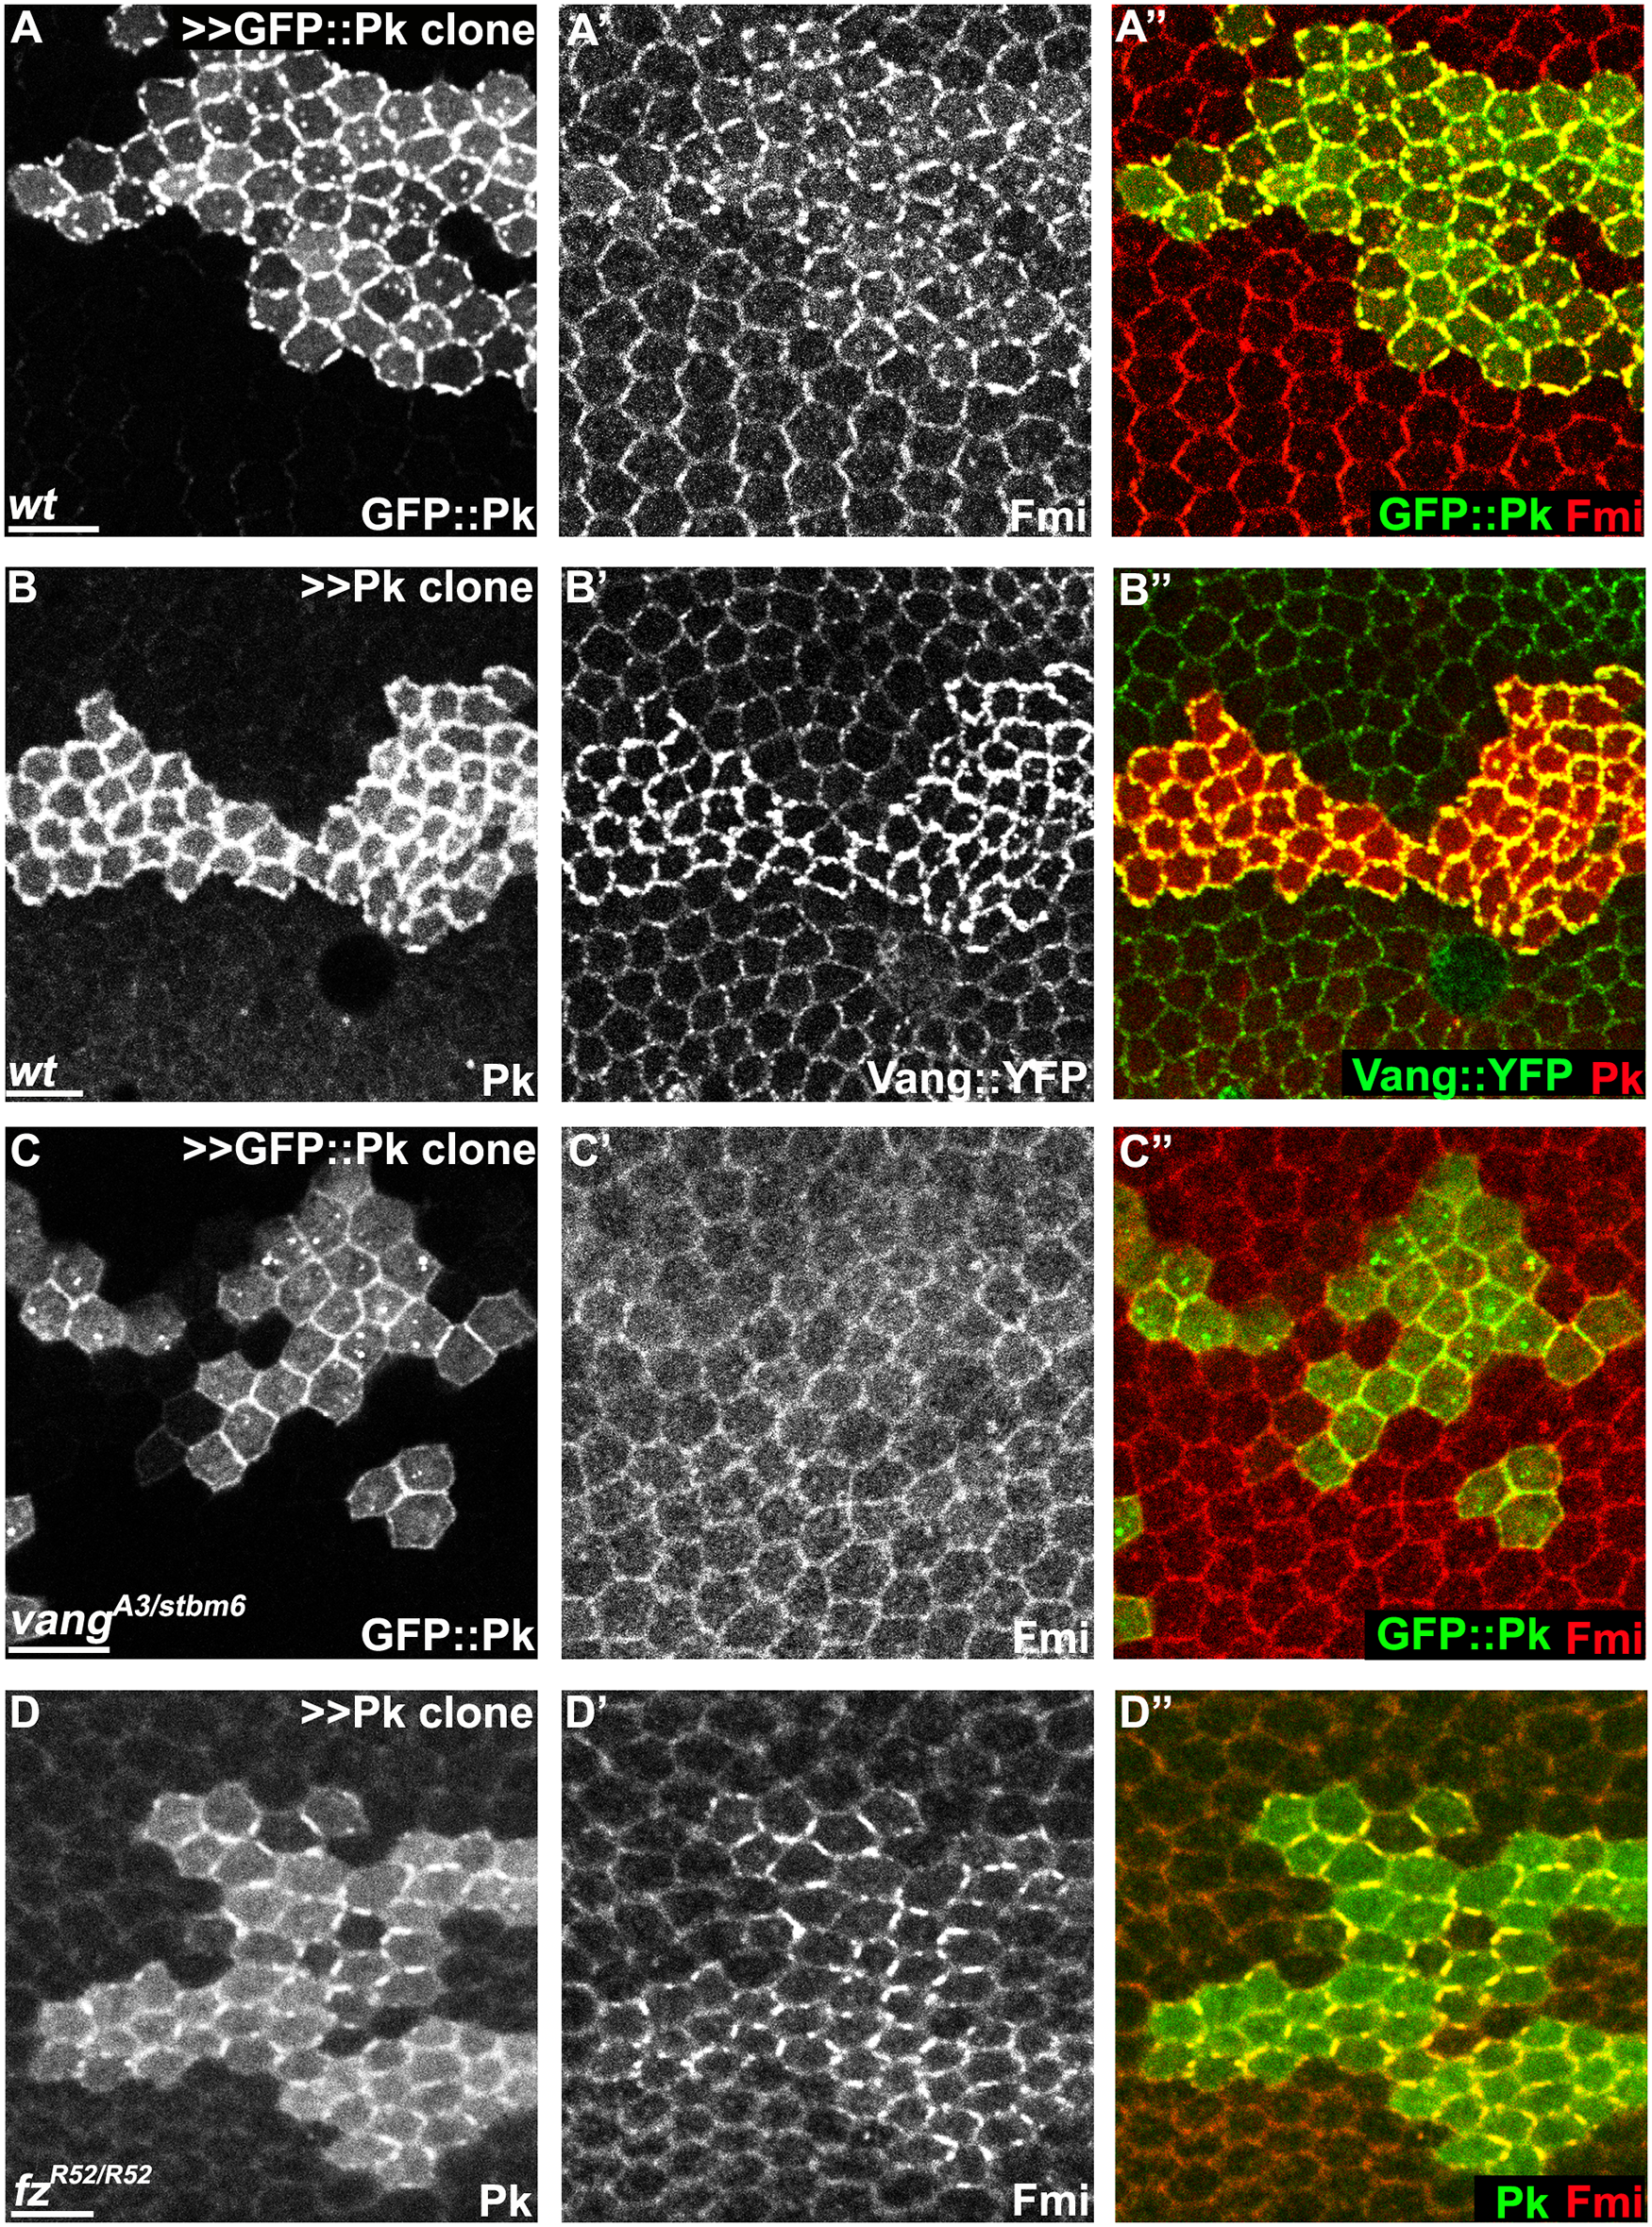 Pk-mediated apical clustering of core proteins requires Vang.